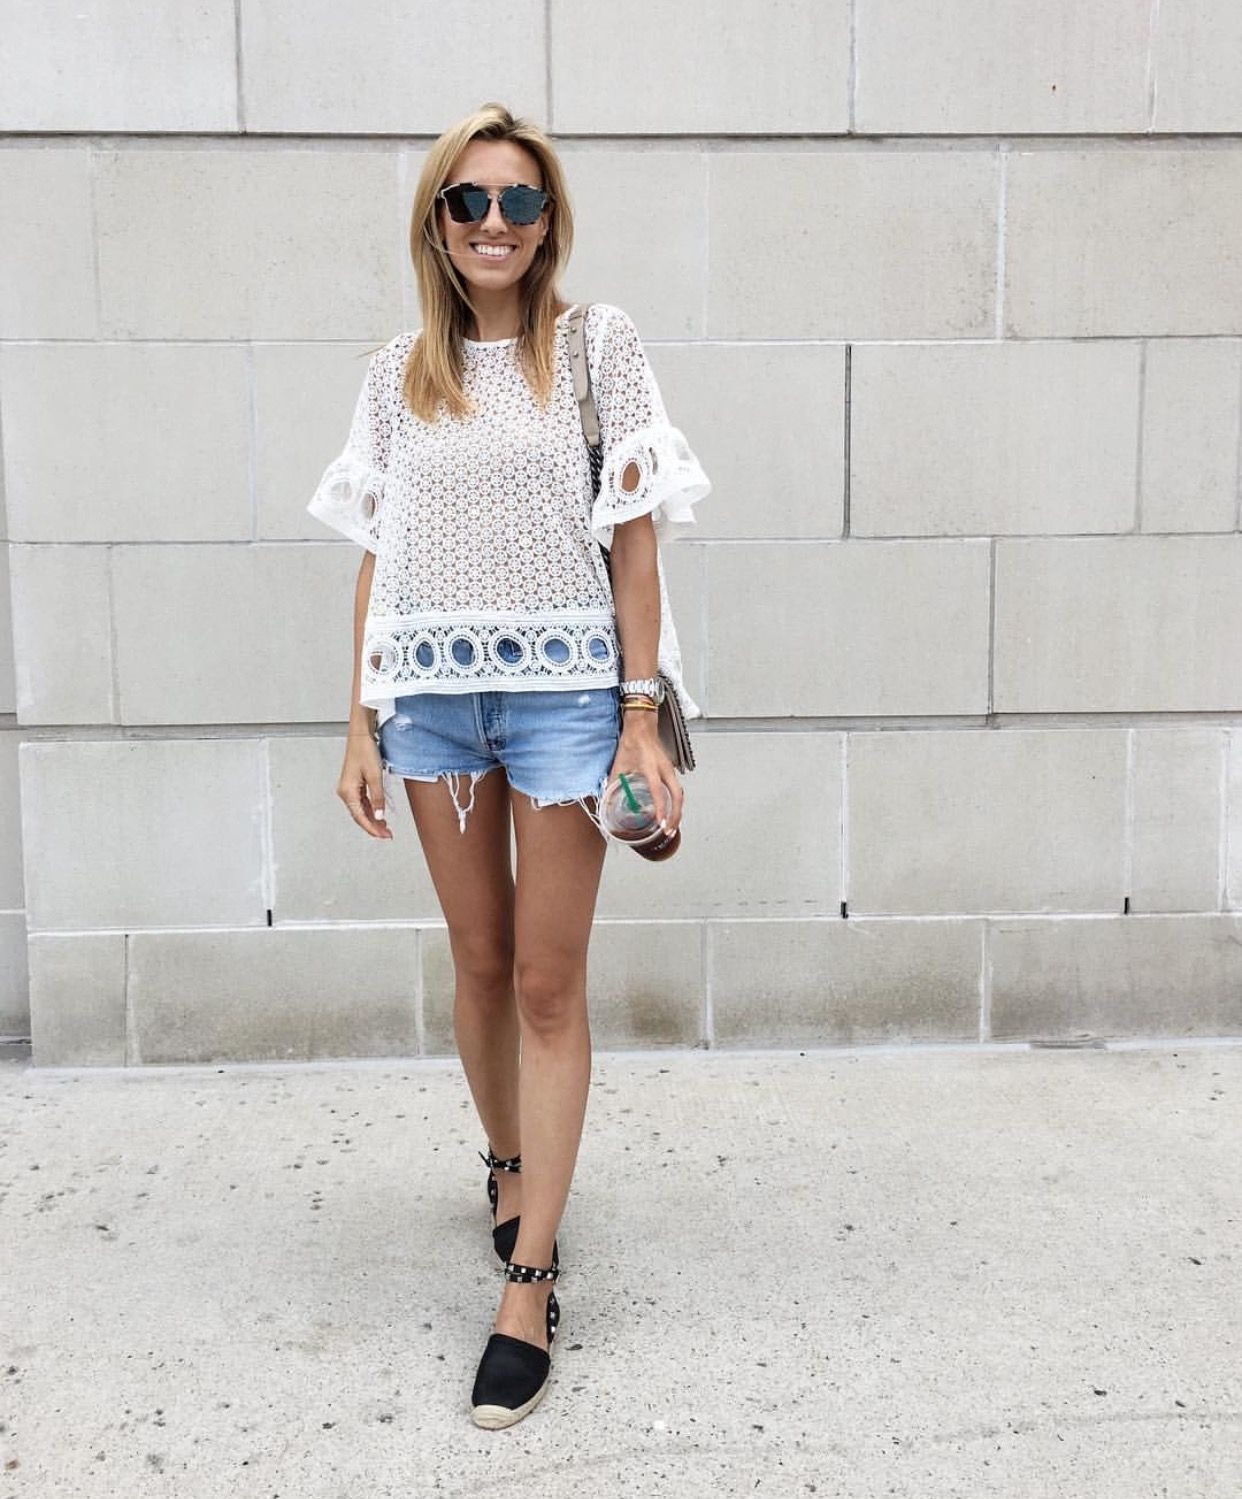 Cut off denim shorts, white crochet too, espadrilles outfit